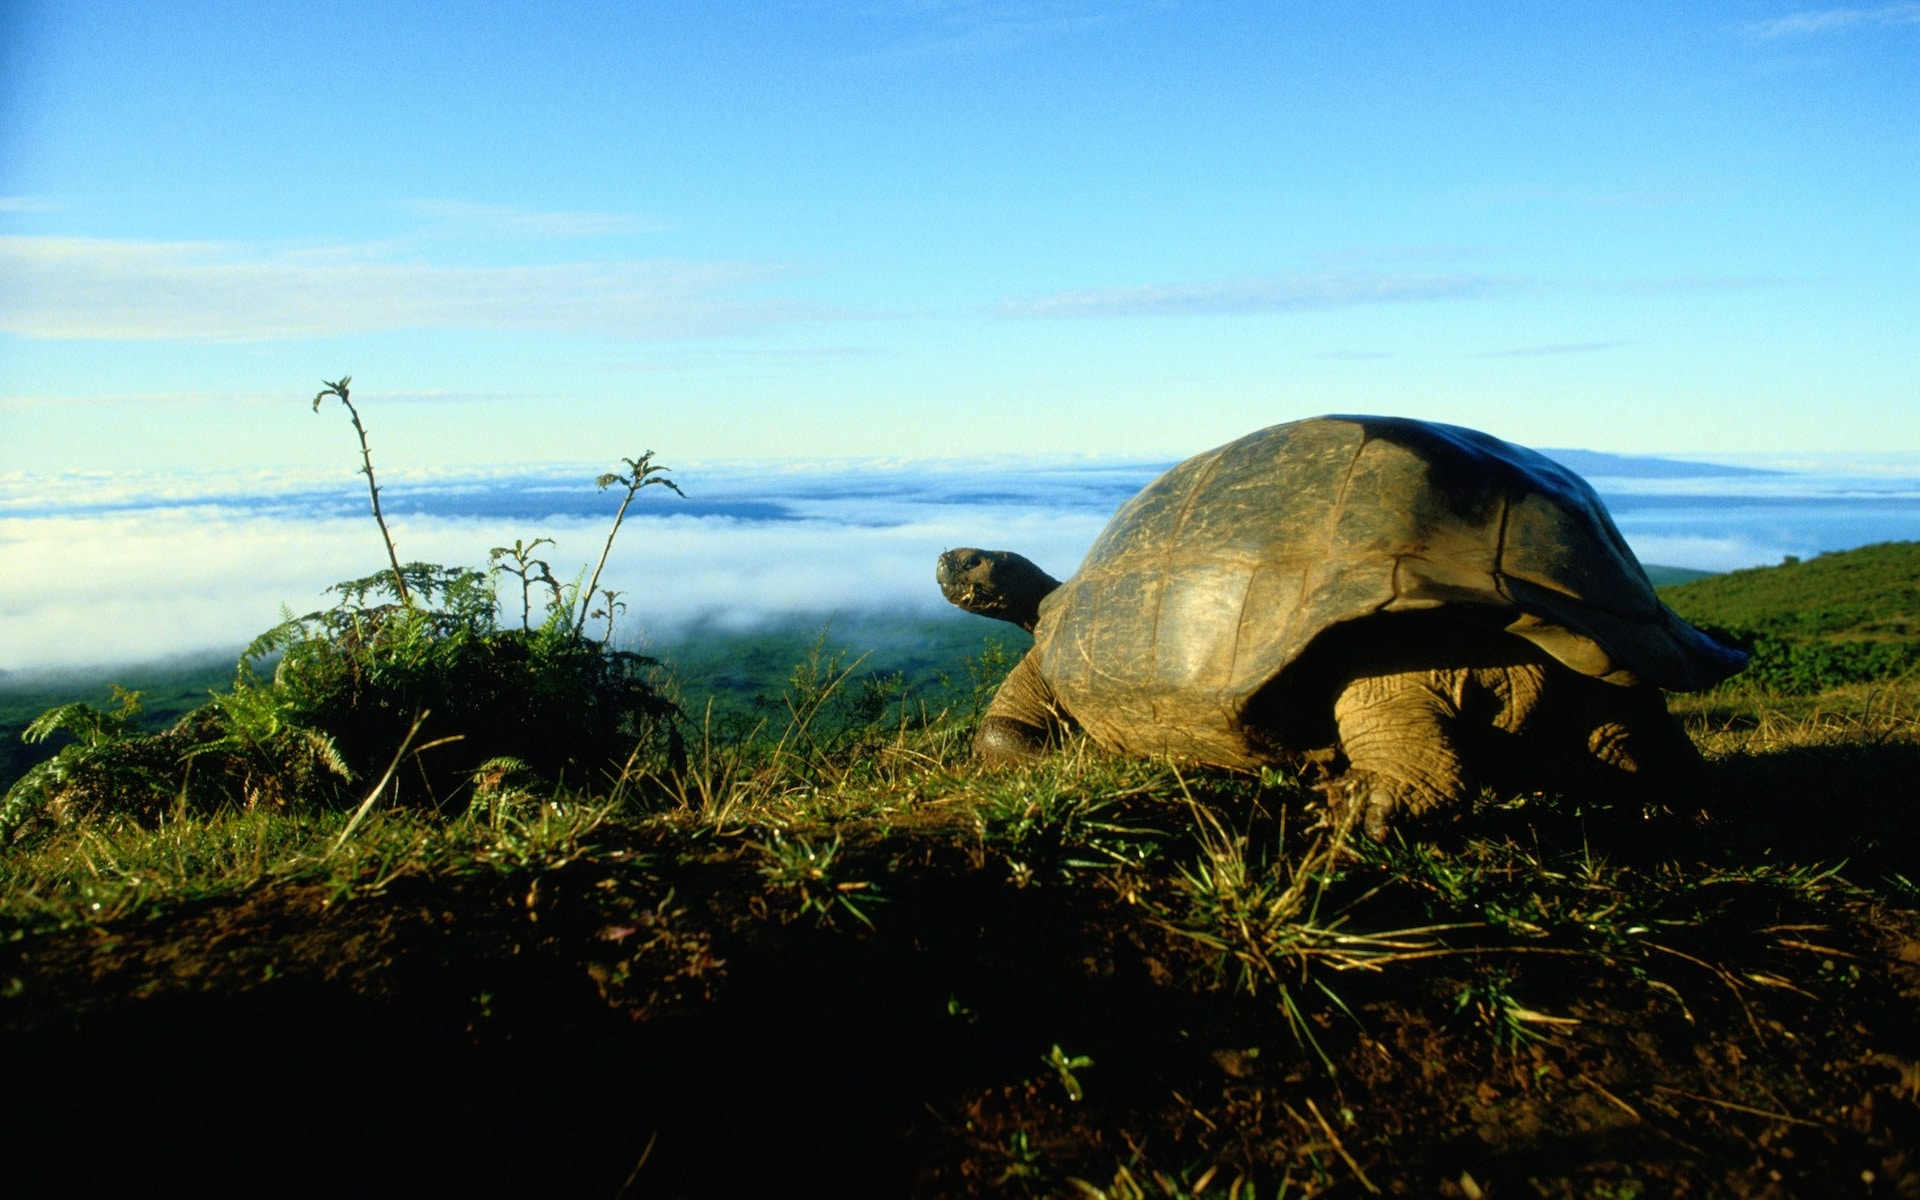 Thieves snatch more than 100 baby giant tortoises from Galapagos Islands